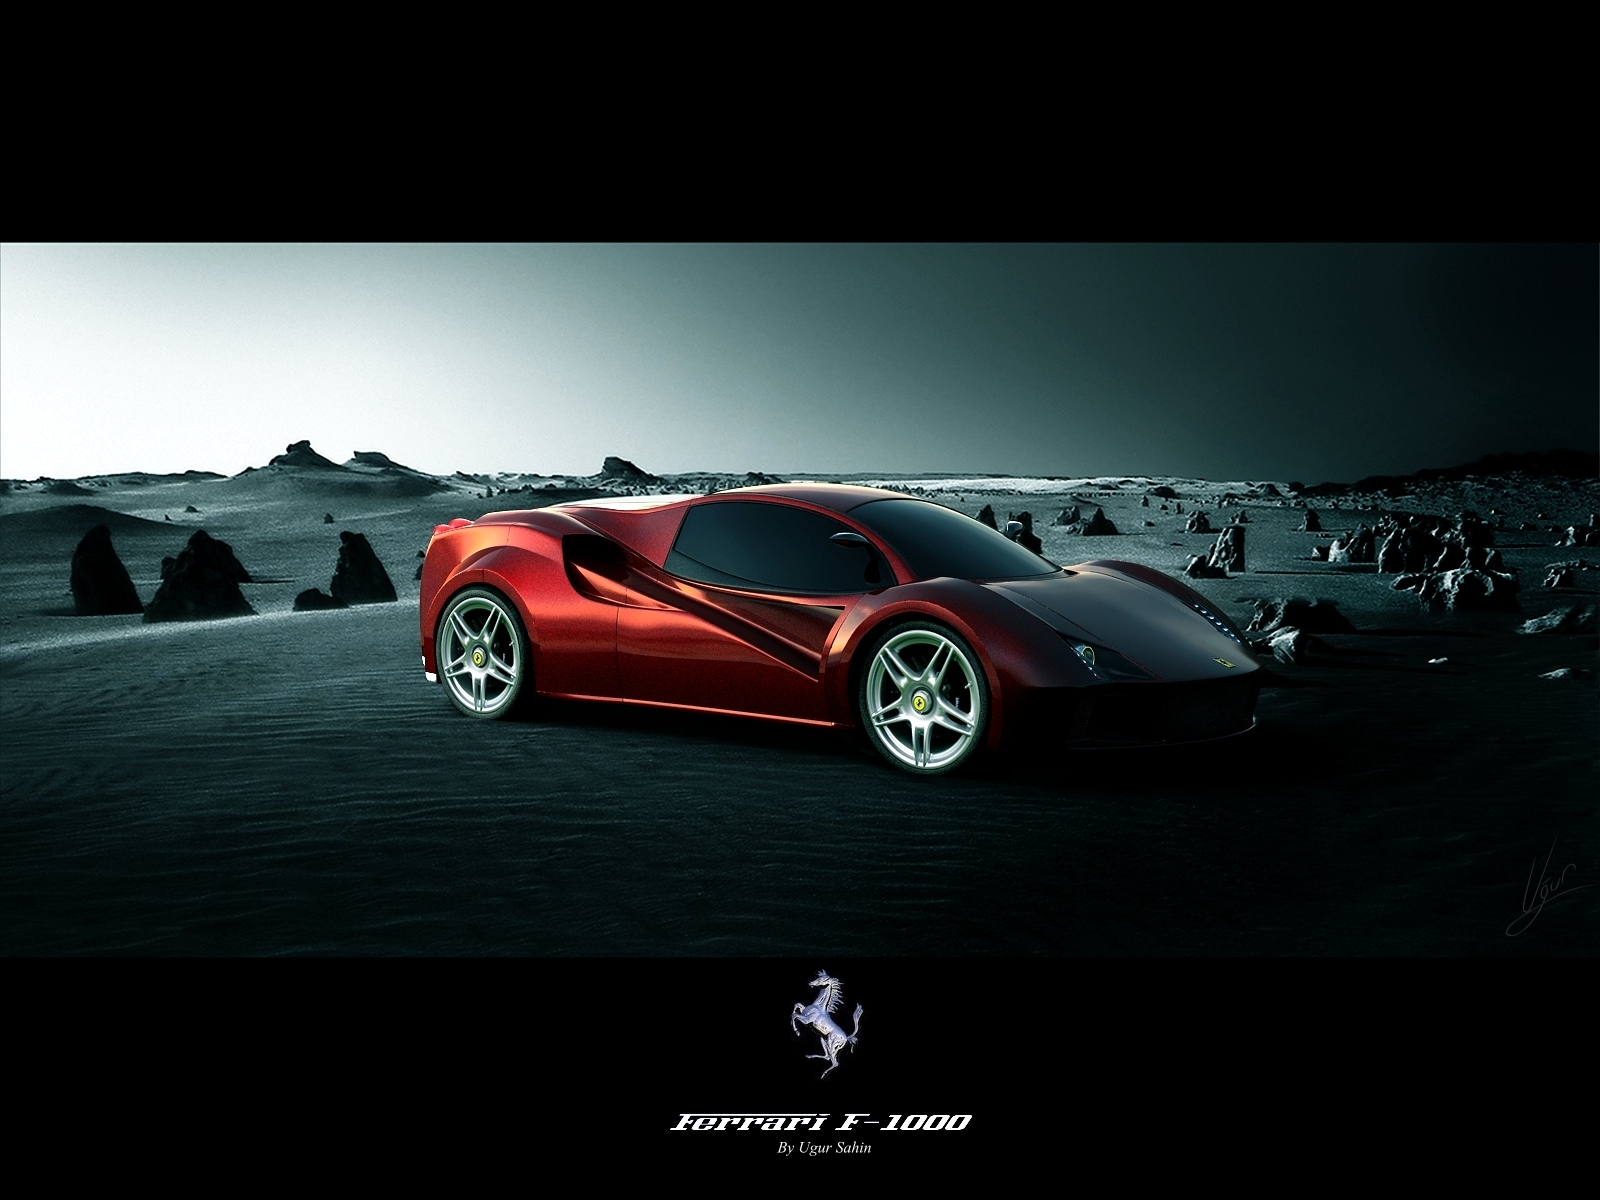 Ferrari F 1000 Concept Wallpapers that were created in 3D 1600x1200